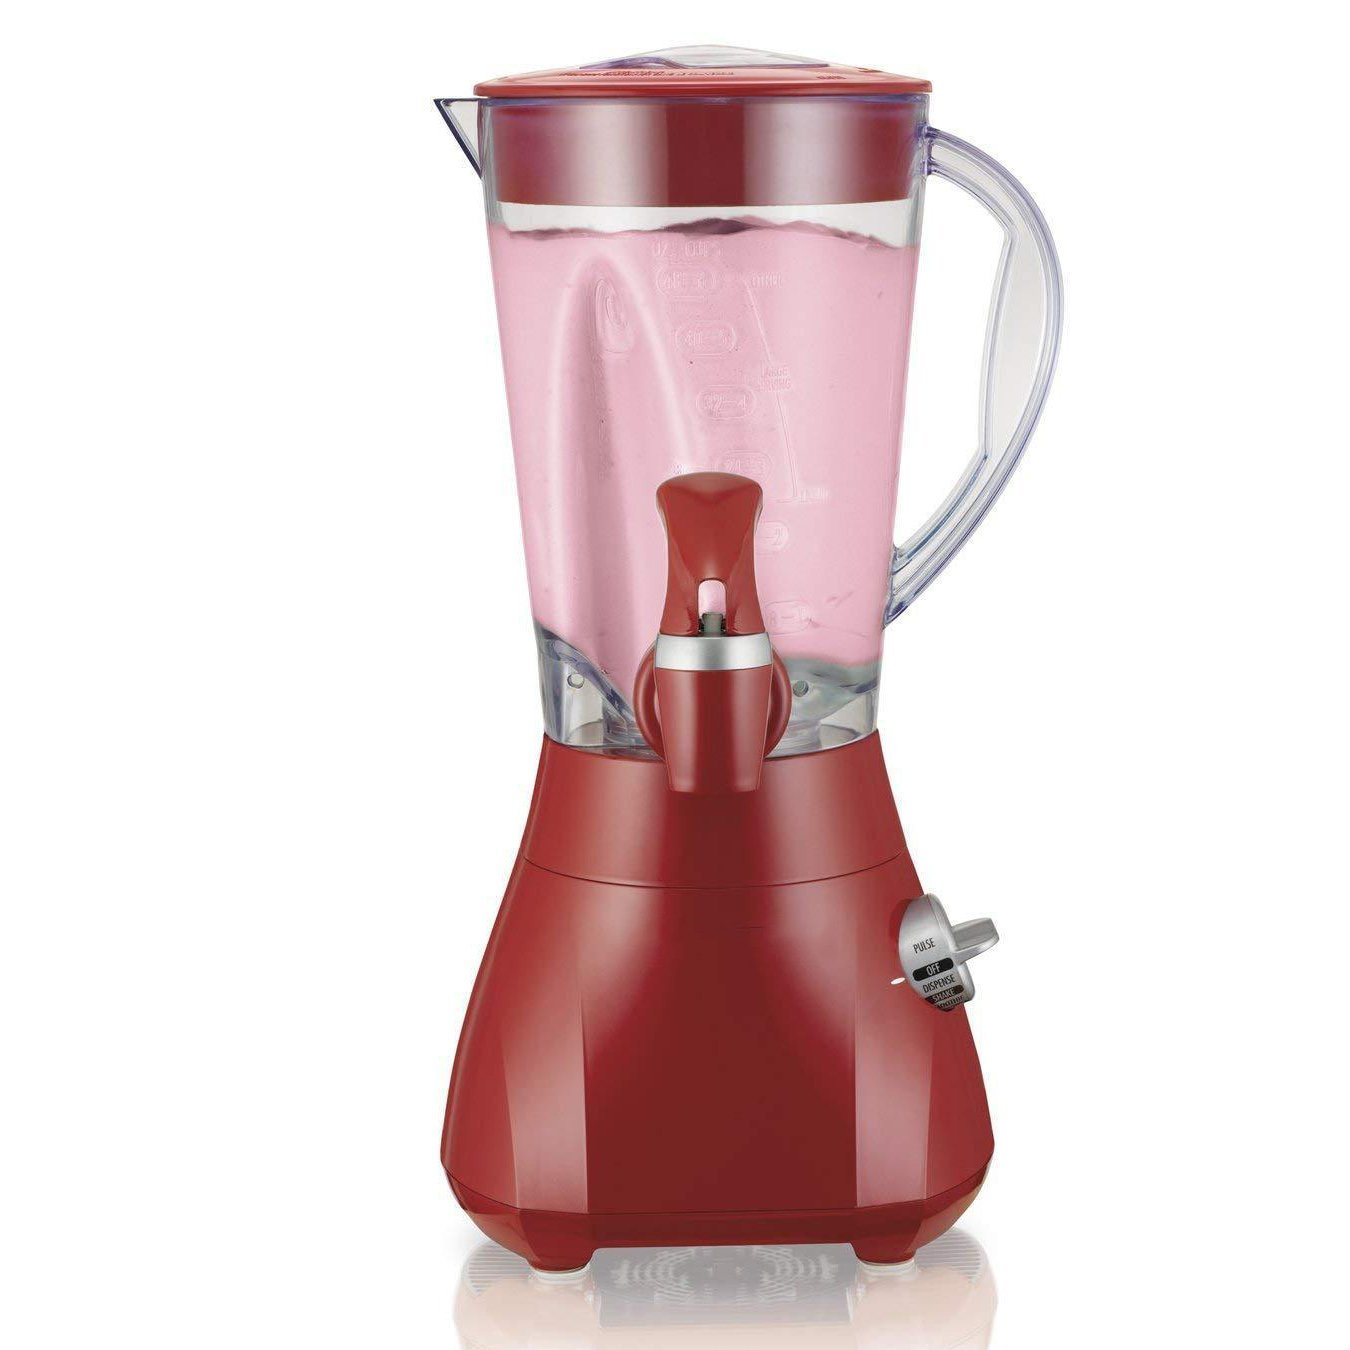 Smoothie Blender With 48-Ounce Jar